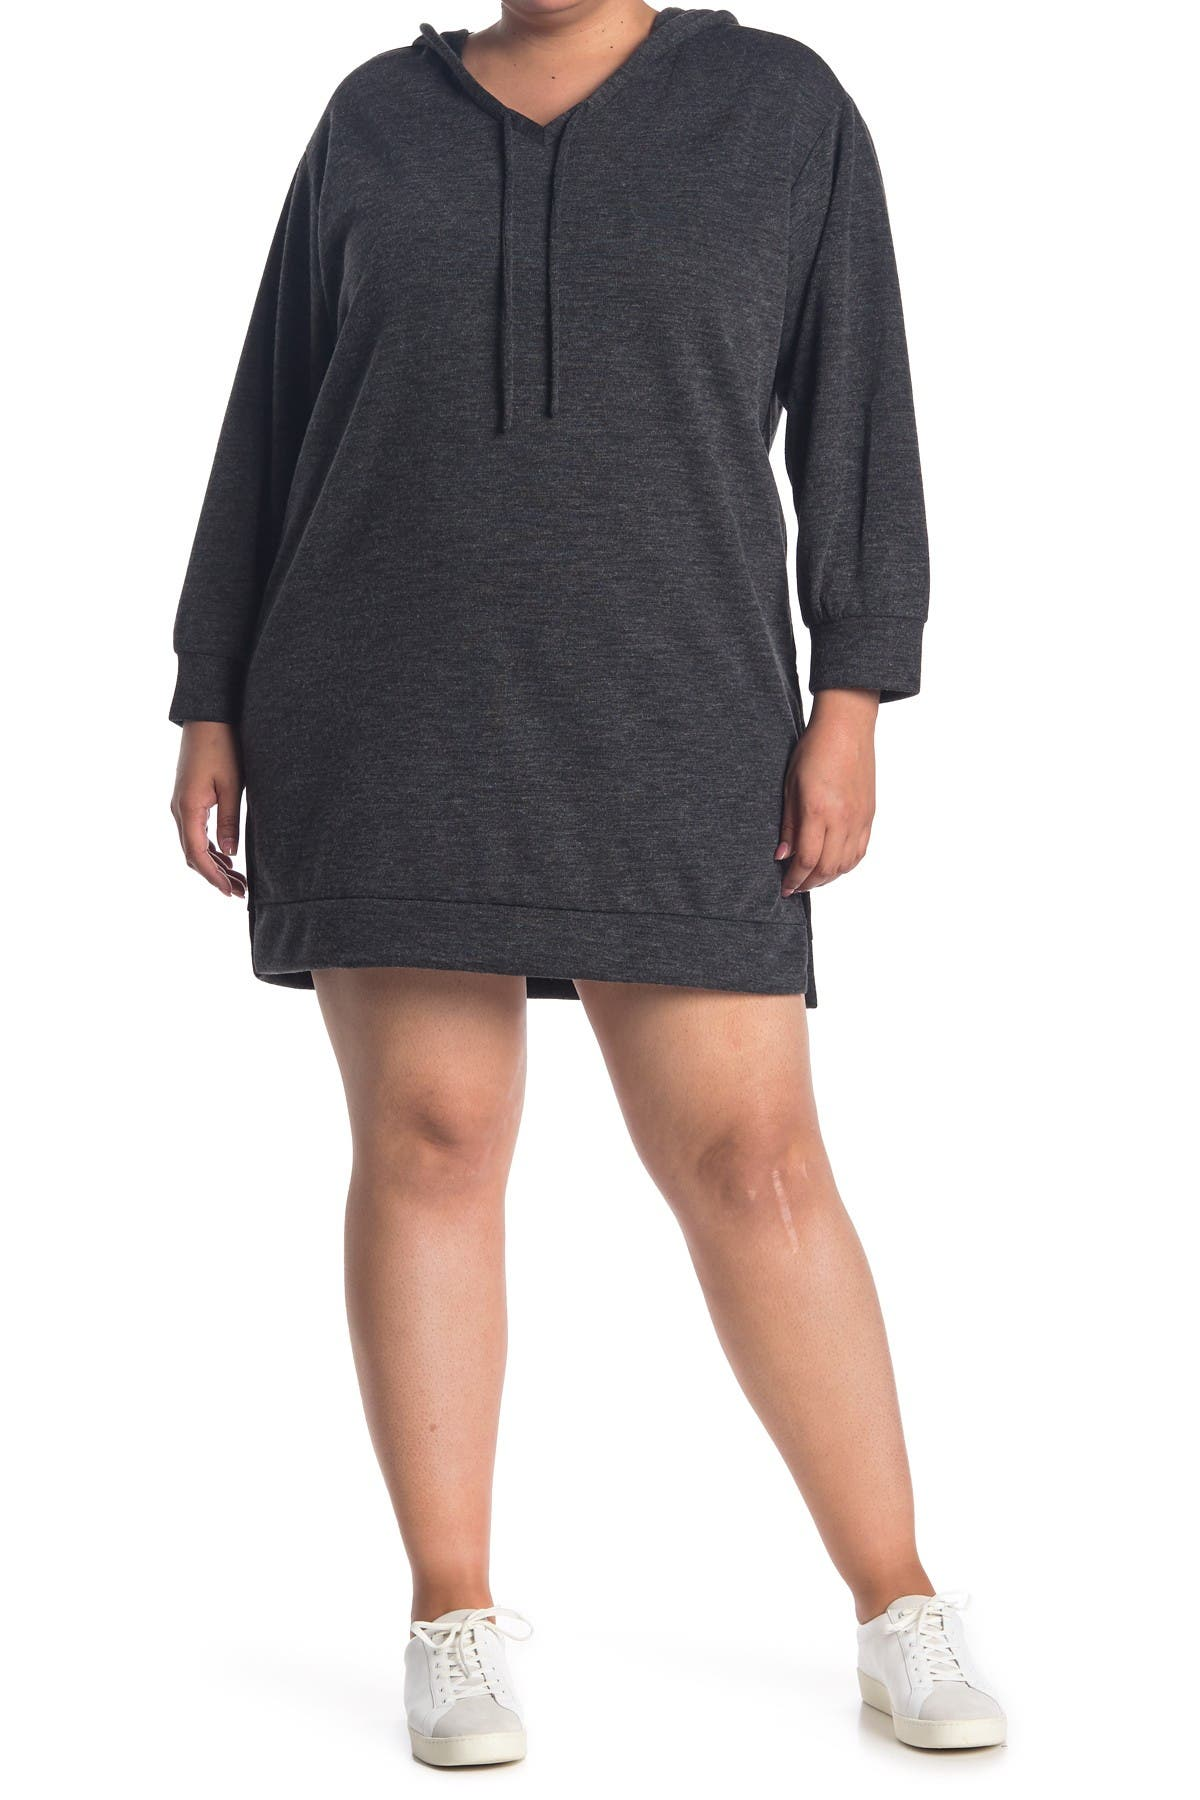 Image of ECLAIR Hacci Knit Hooded Sweatshirt Dress